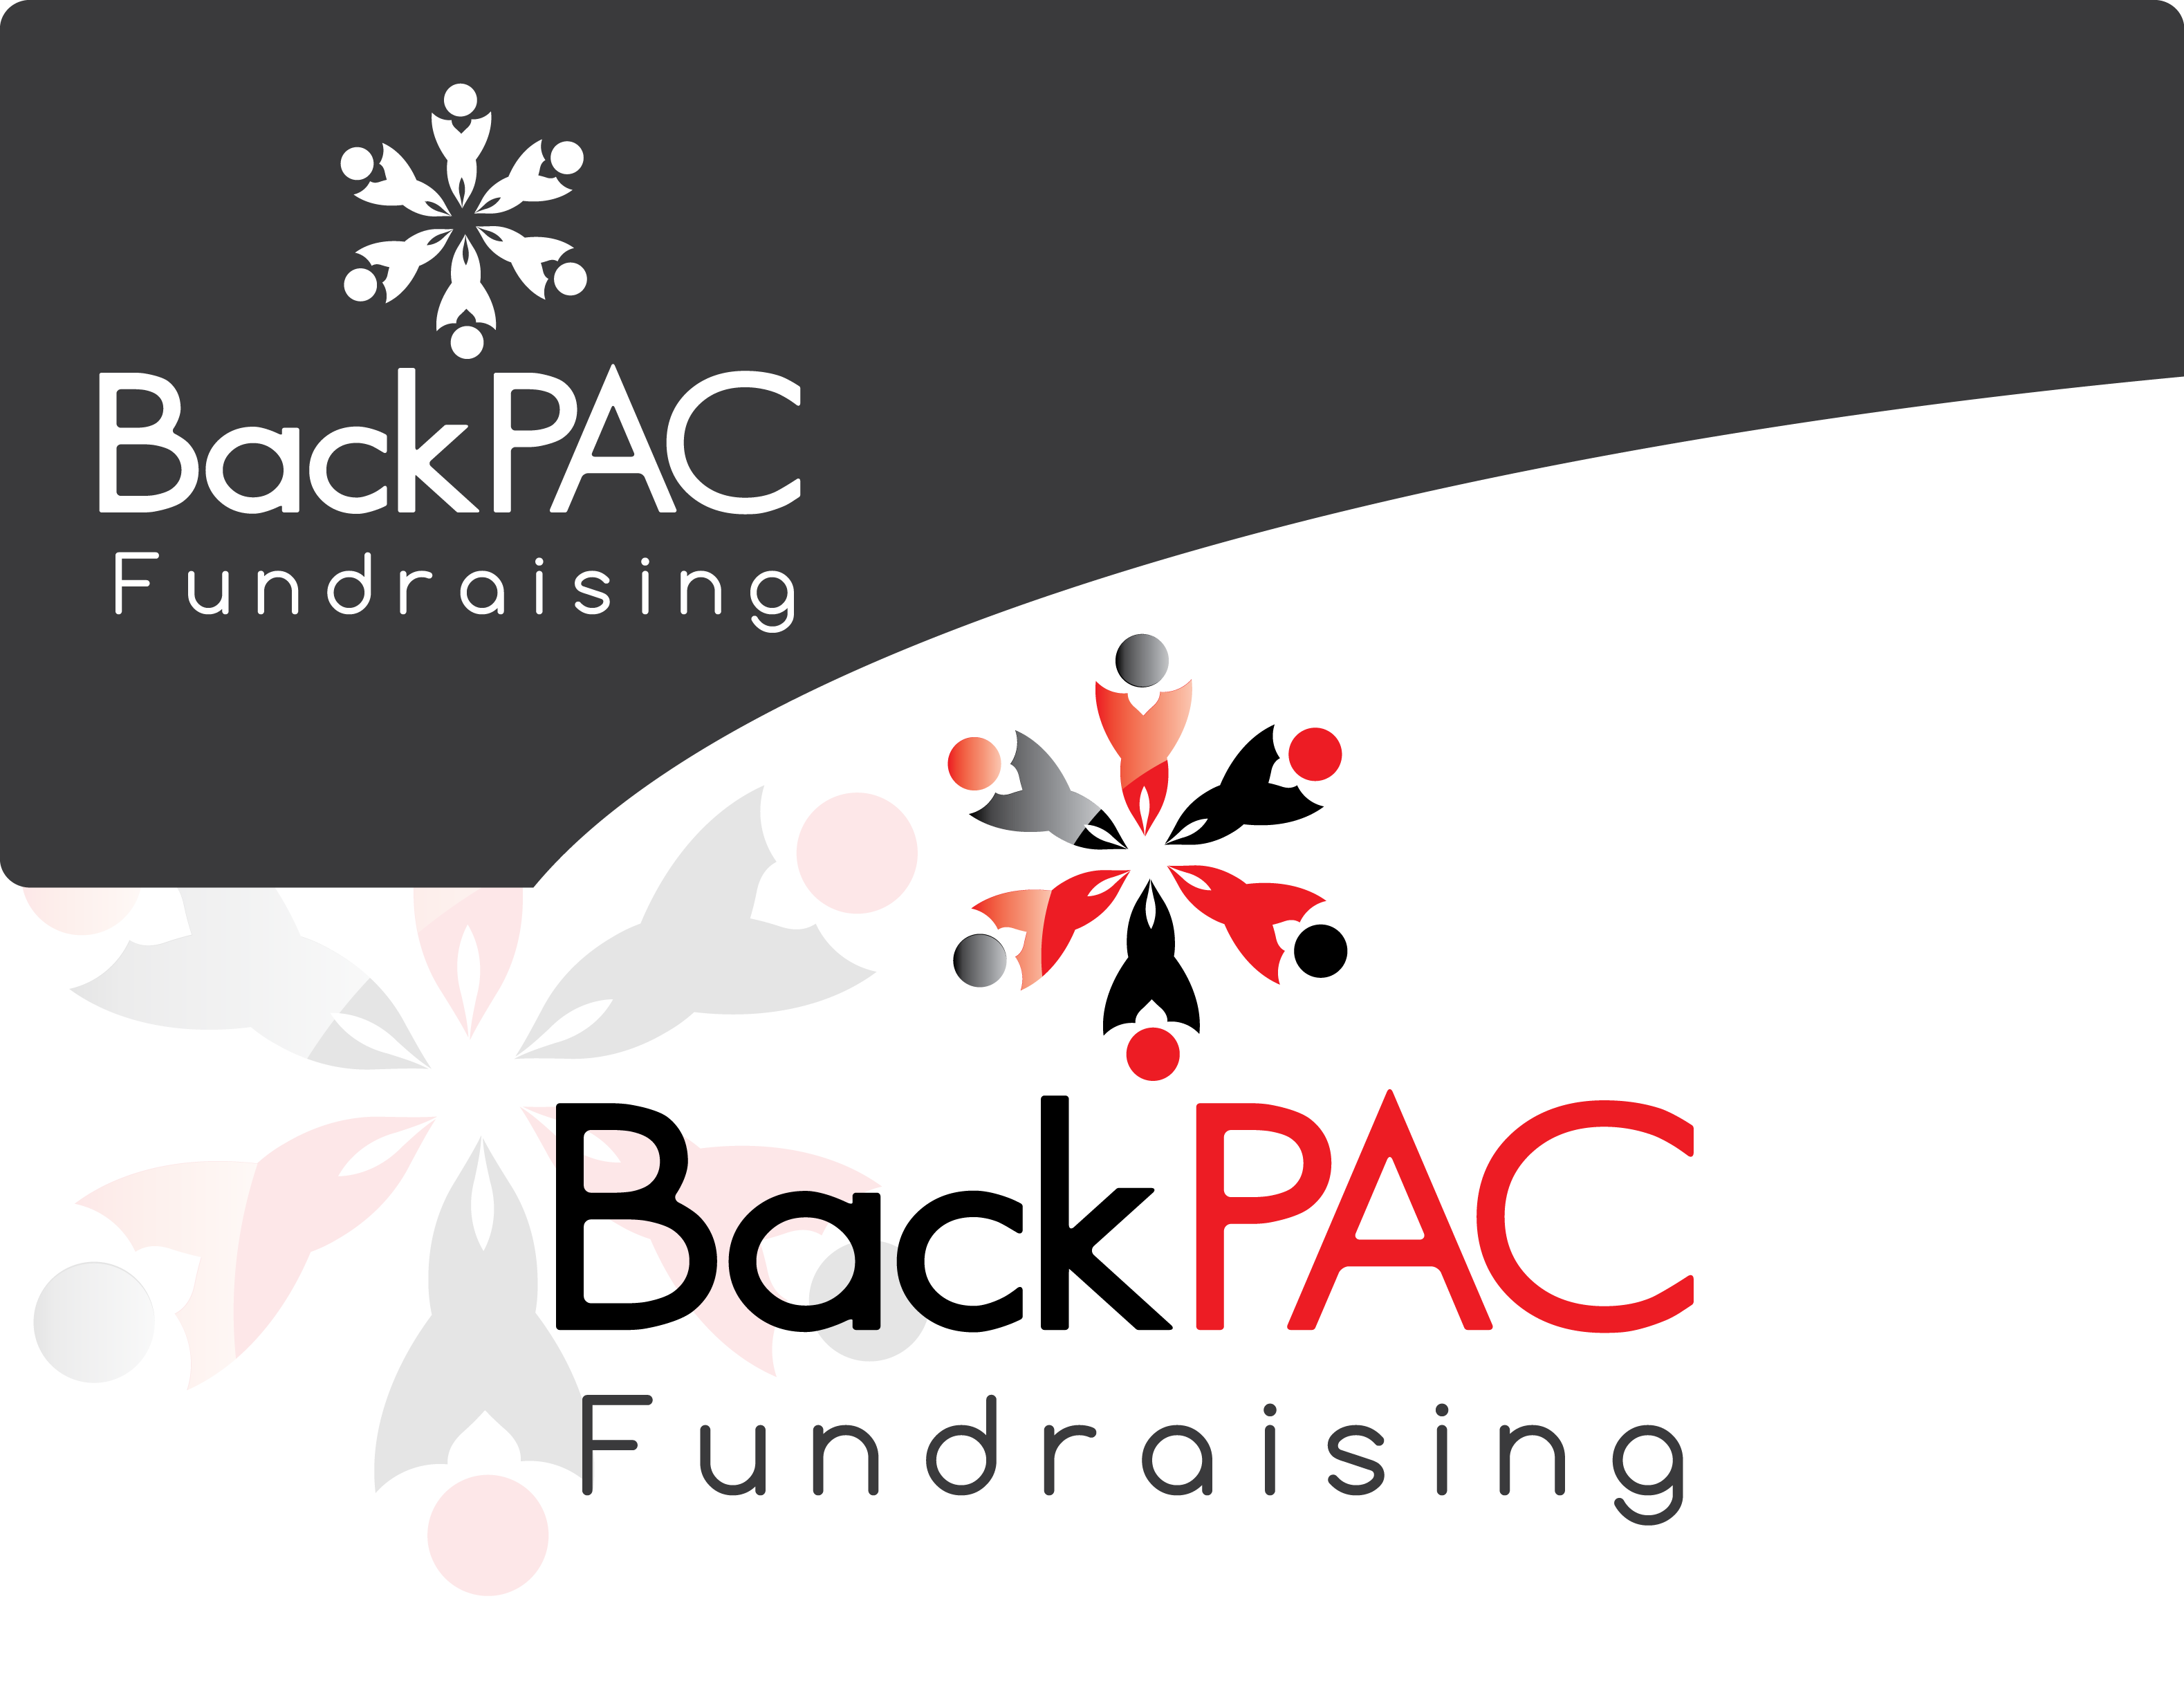 Logo Design by 354studio - Entry No. 45 in the Logo Design Contest Imaginative Logo Design for BackPAC Fundraising.